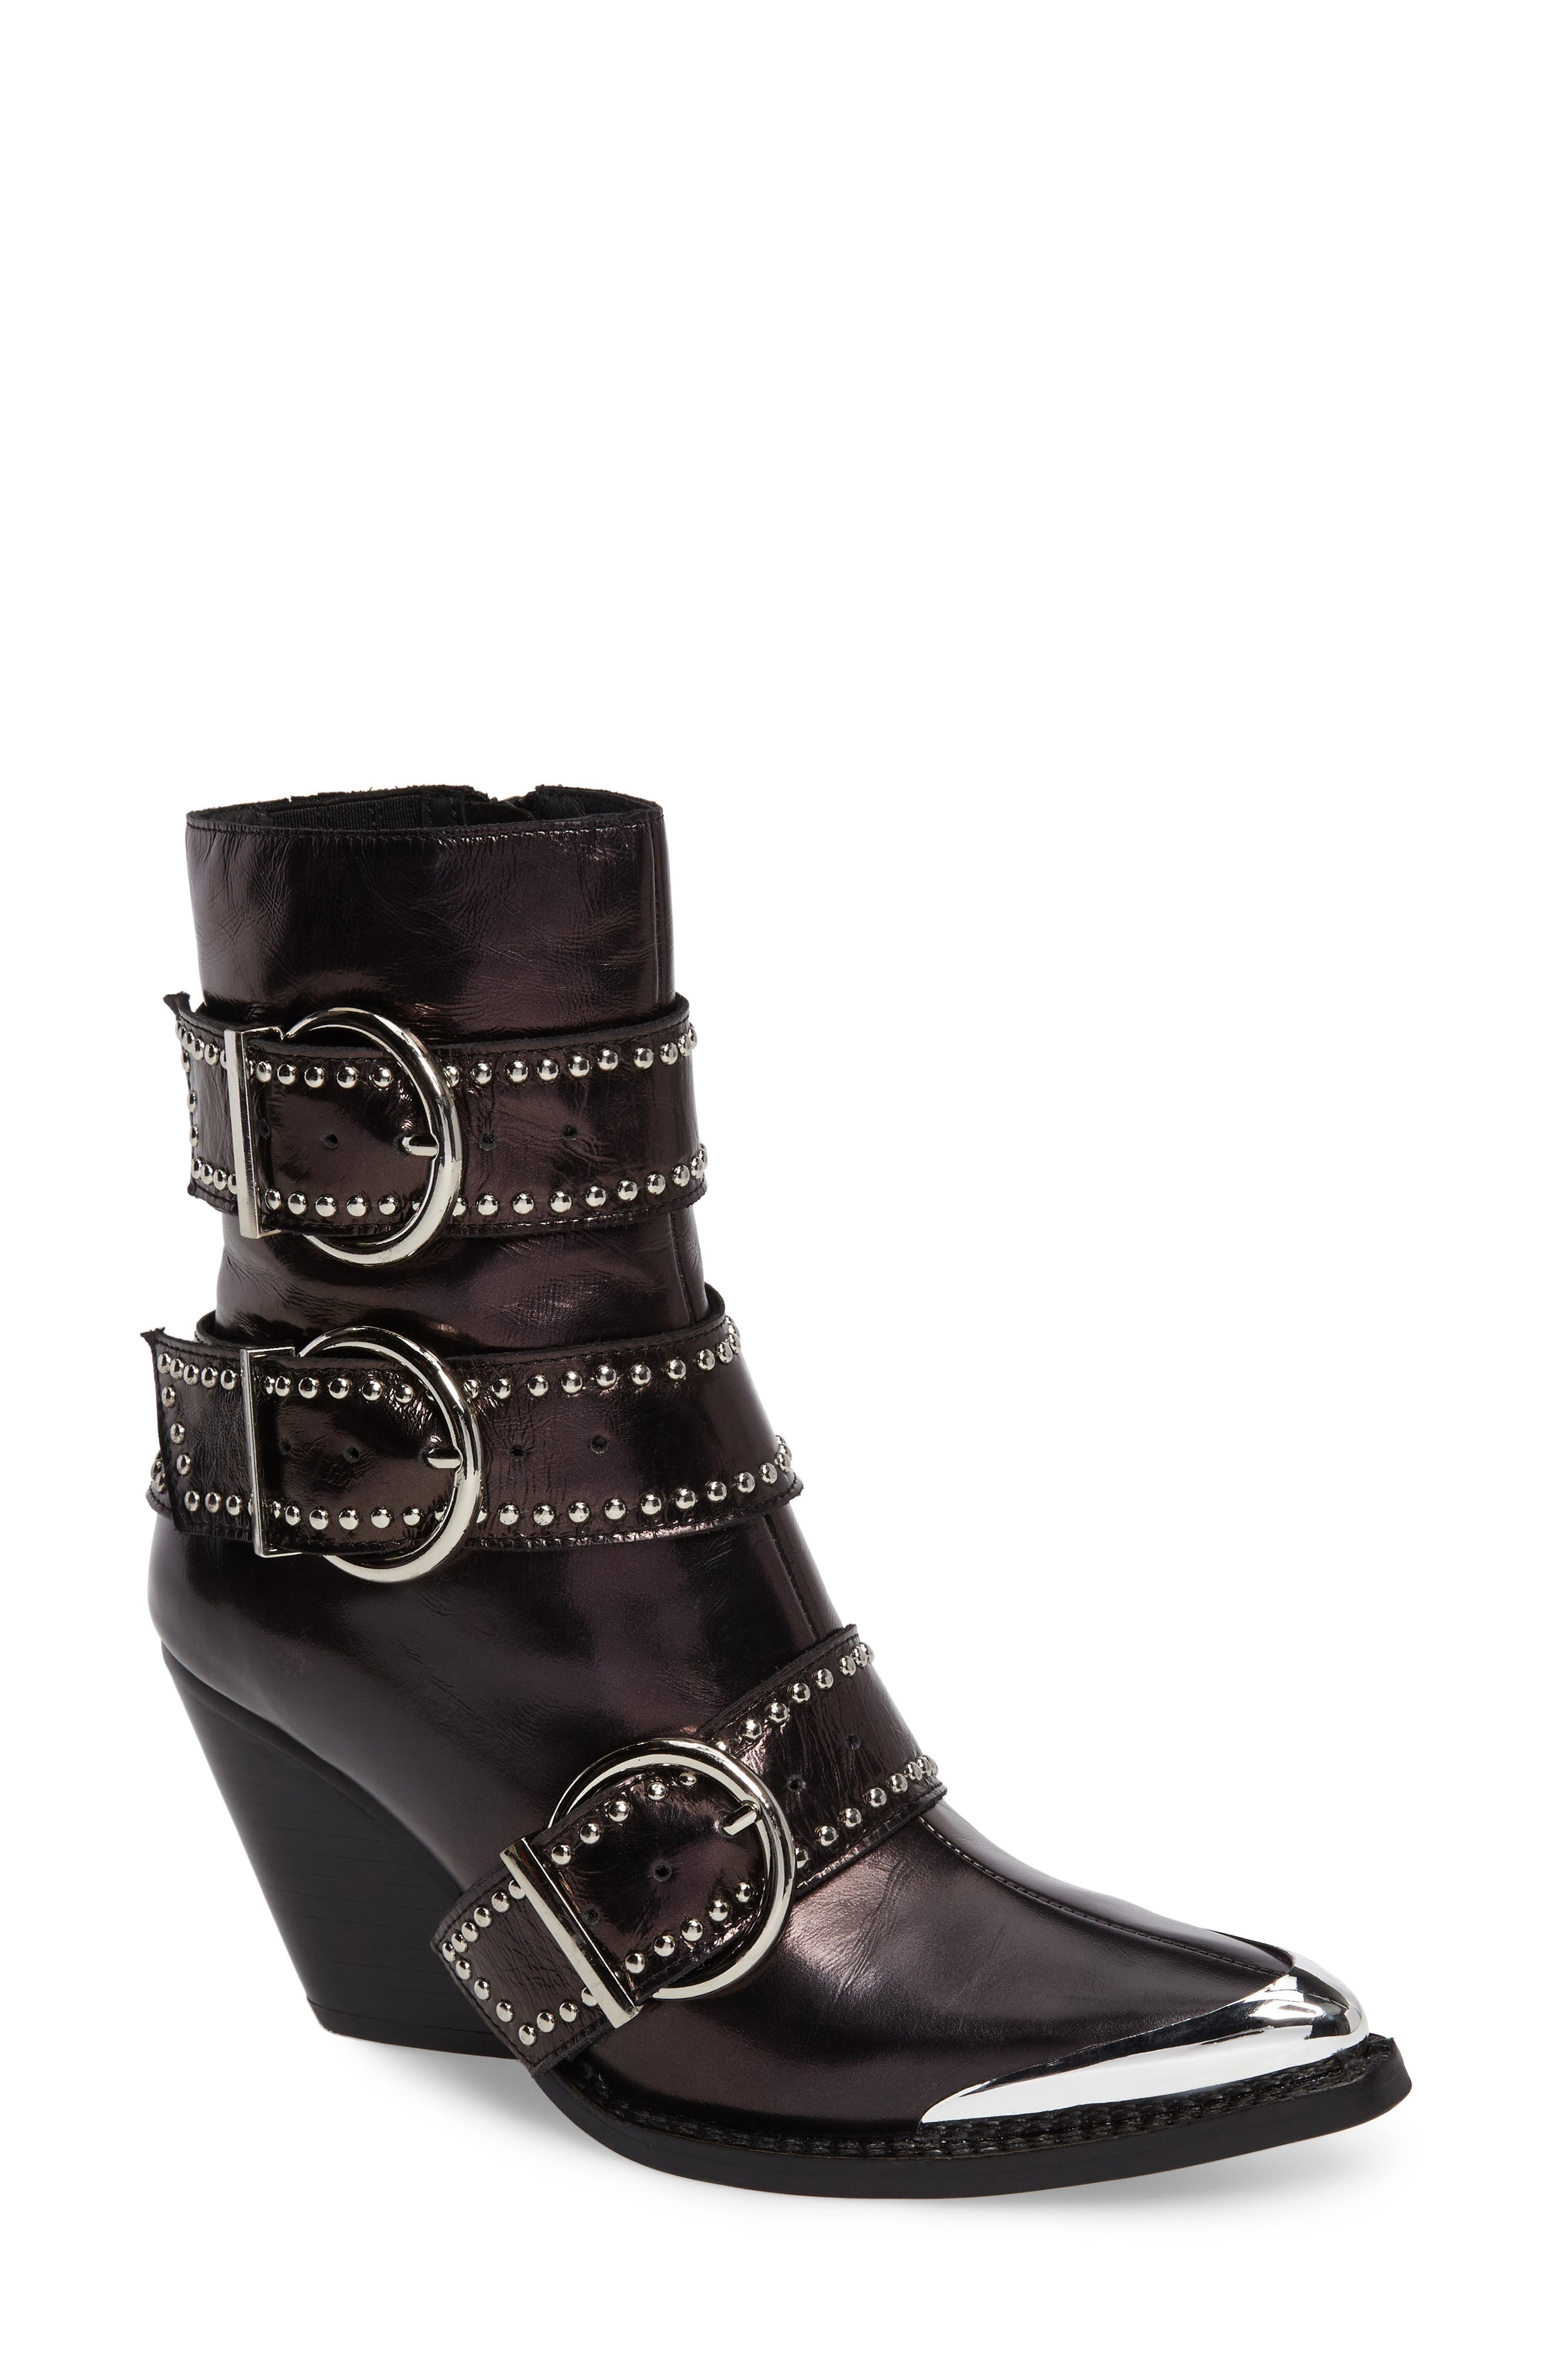 Alternate Image 1 Selected - Jeffrrey Campbell Marvolo Studded Bootie (Women)